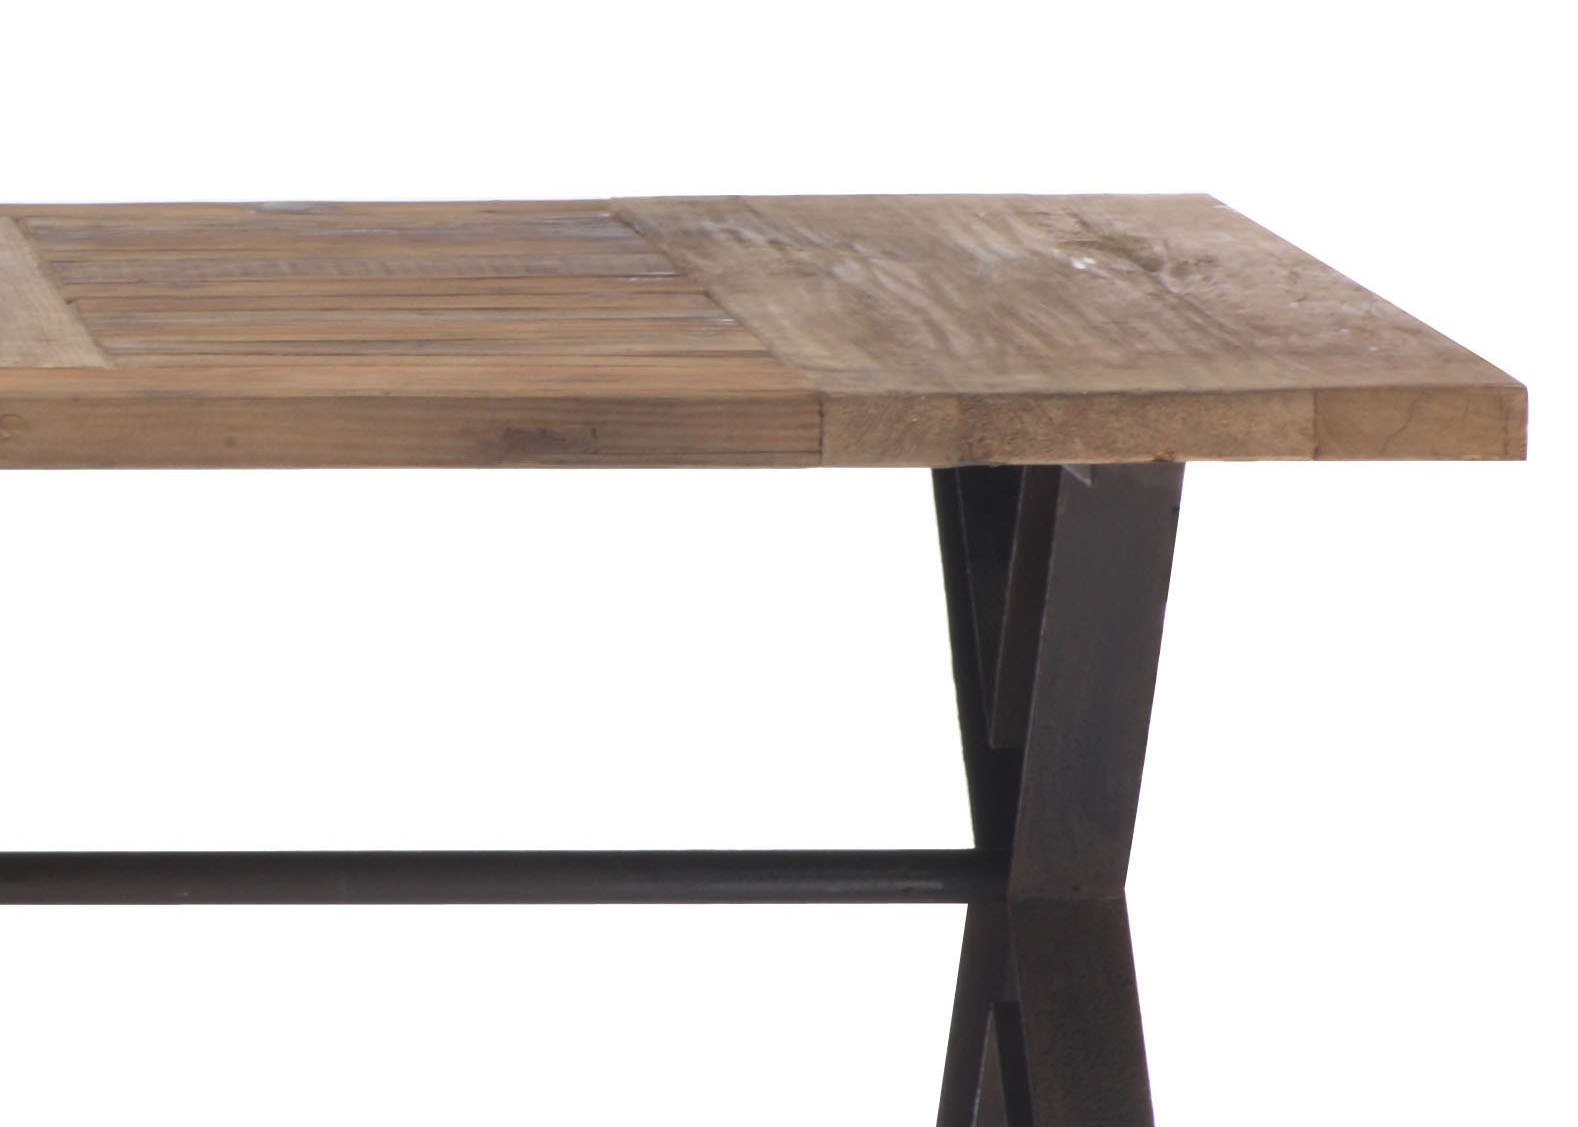 Contemporary trestle legs dining table with intricate top for Modern wooden dining table designs